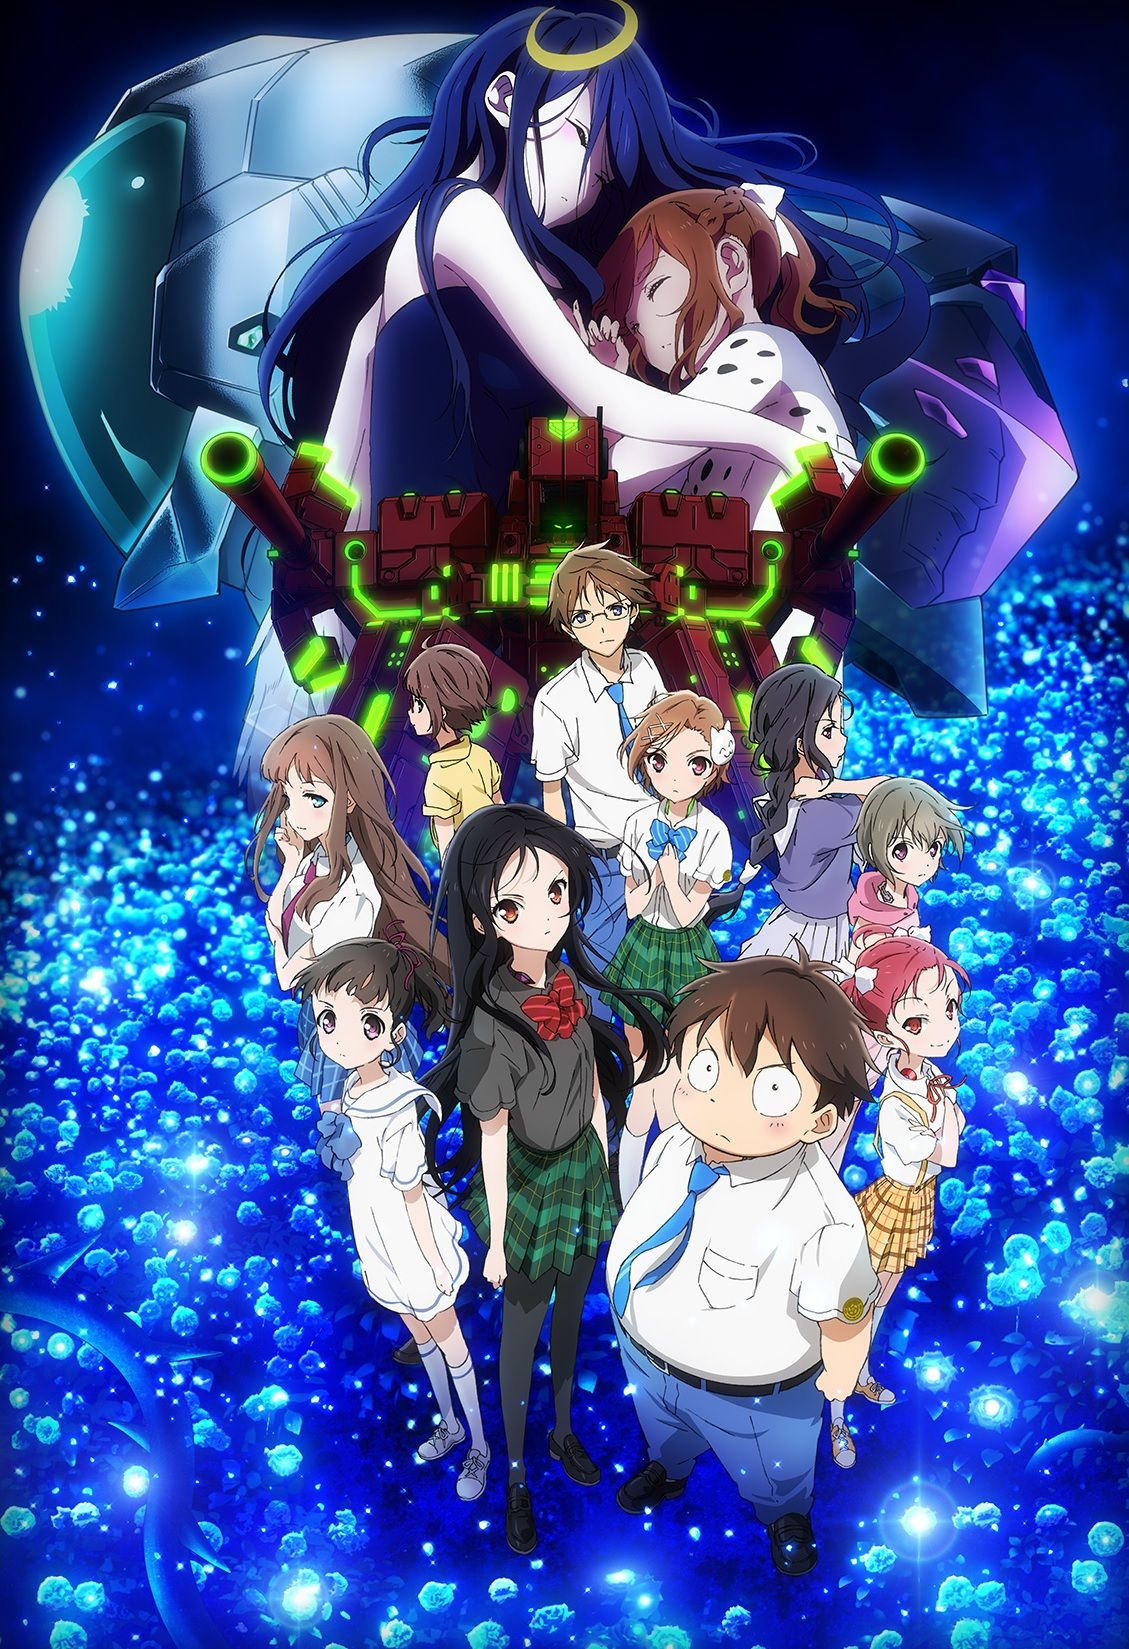 Accel World Infinite Burst promo key